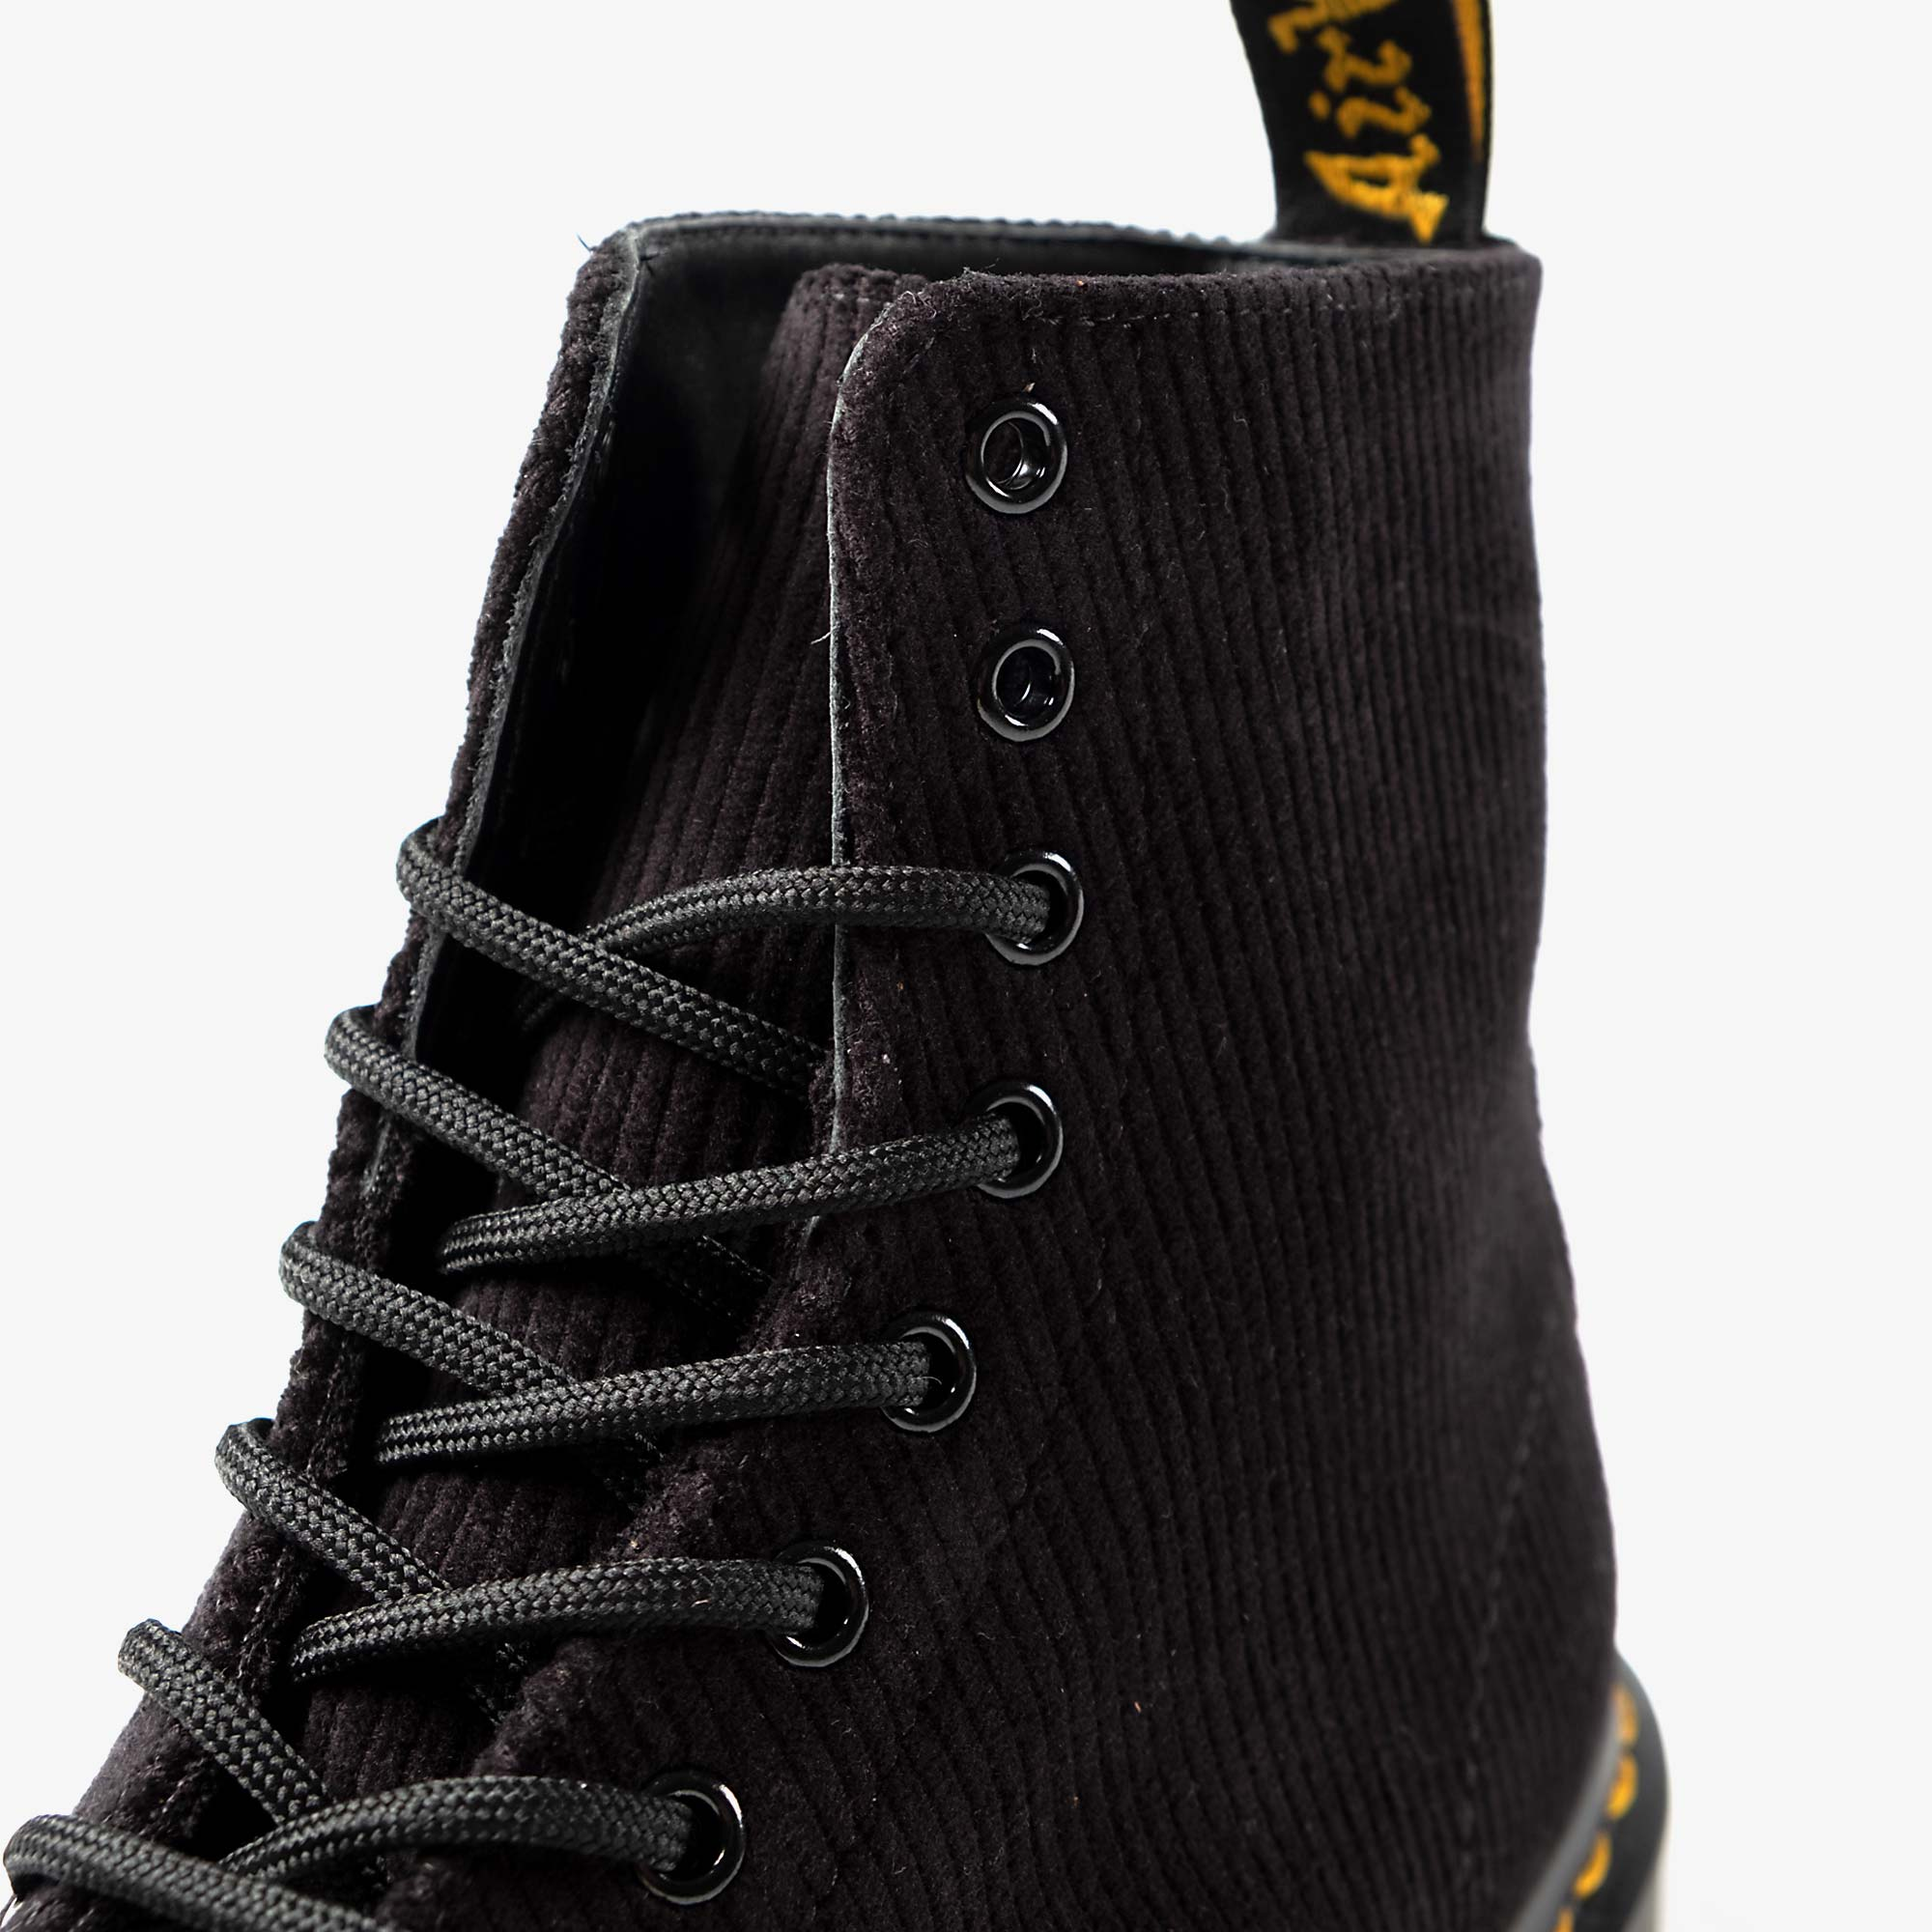 Undercover Undercover x Dr. Martens 1460 Corduroy - Black 8